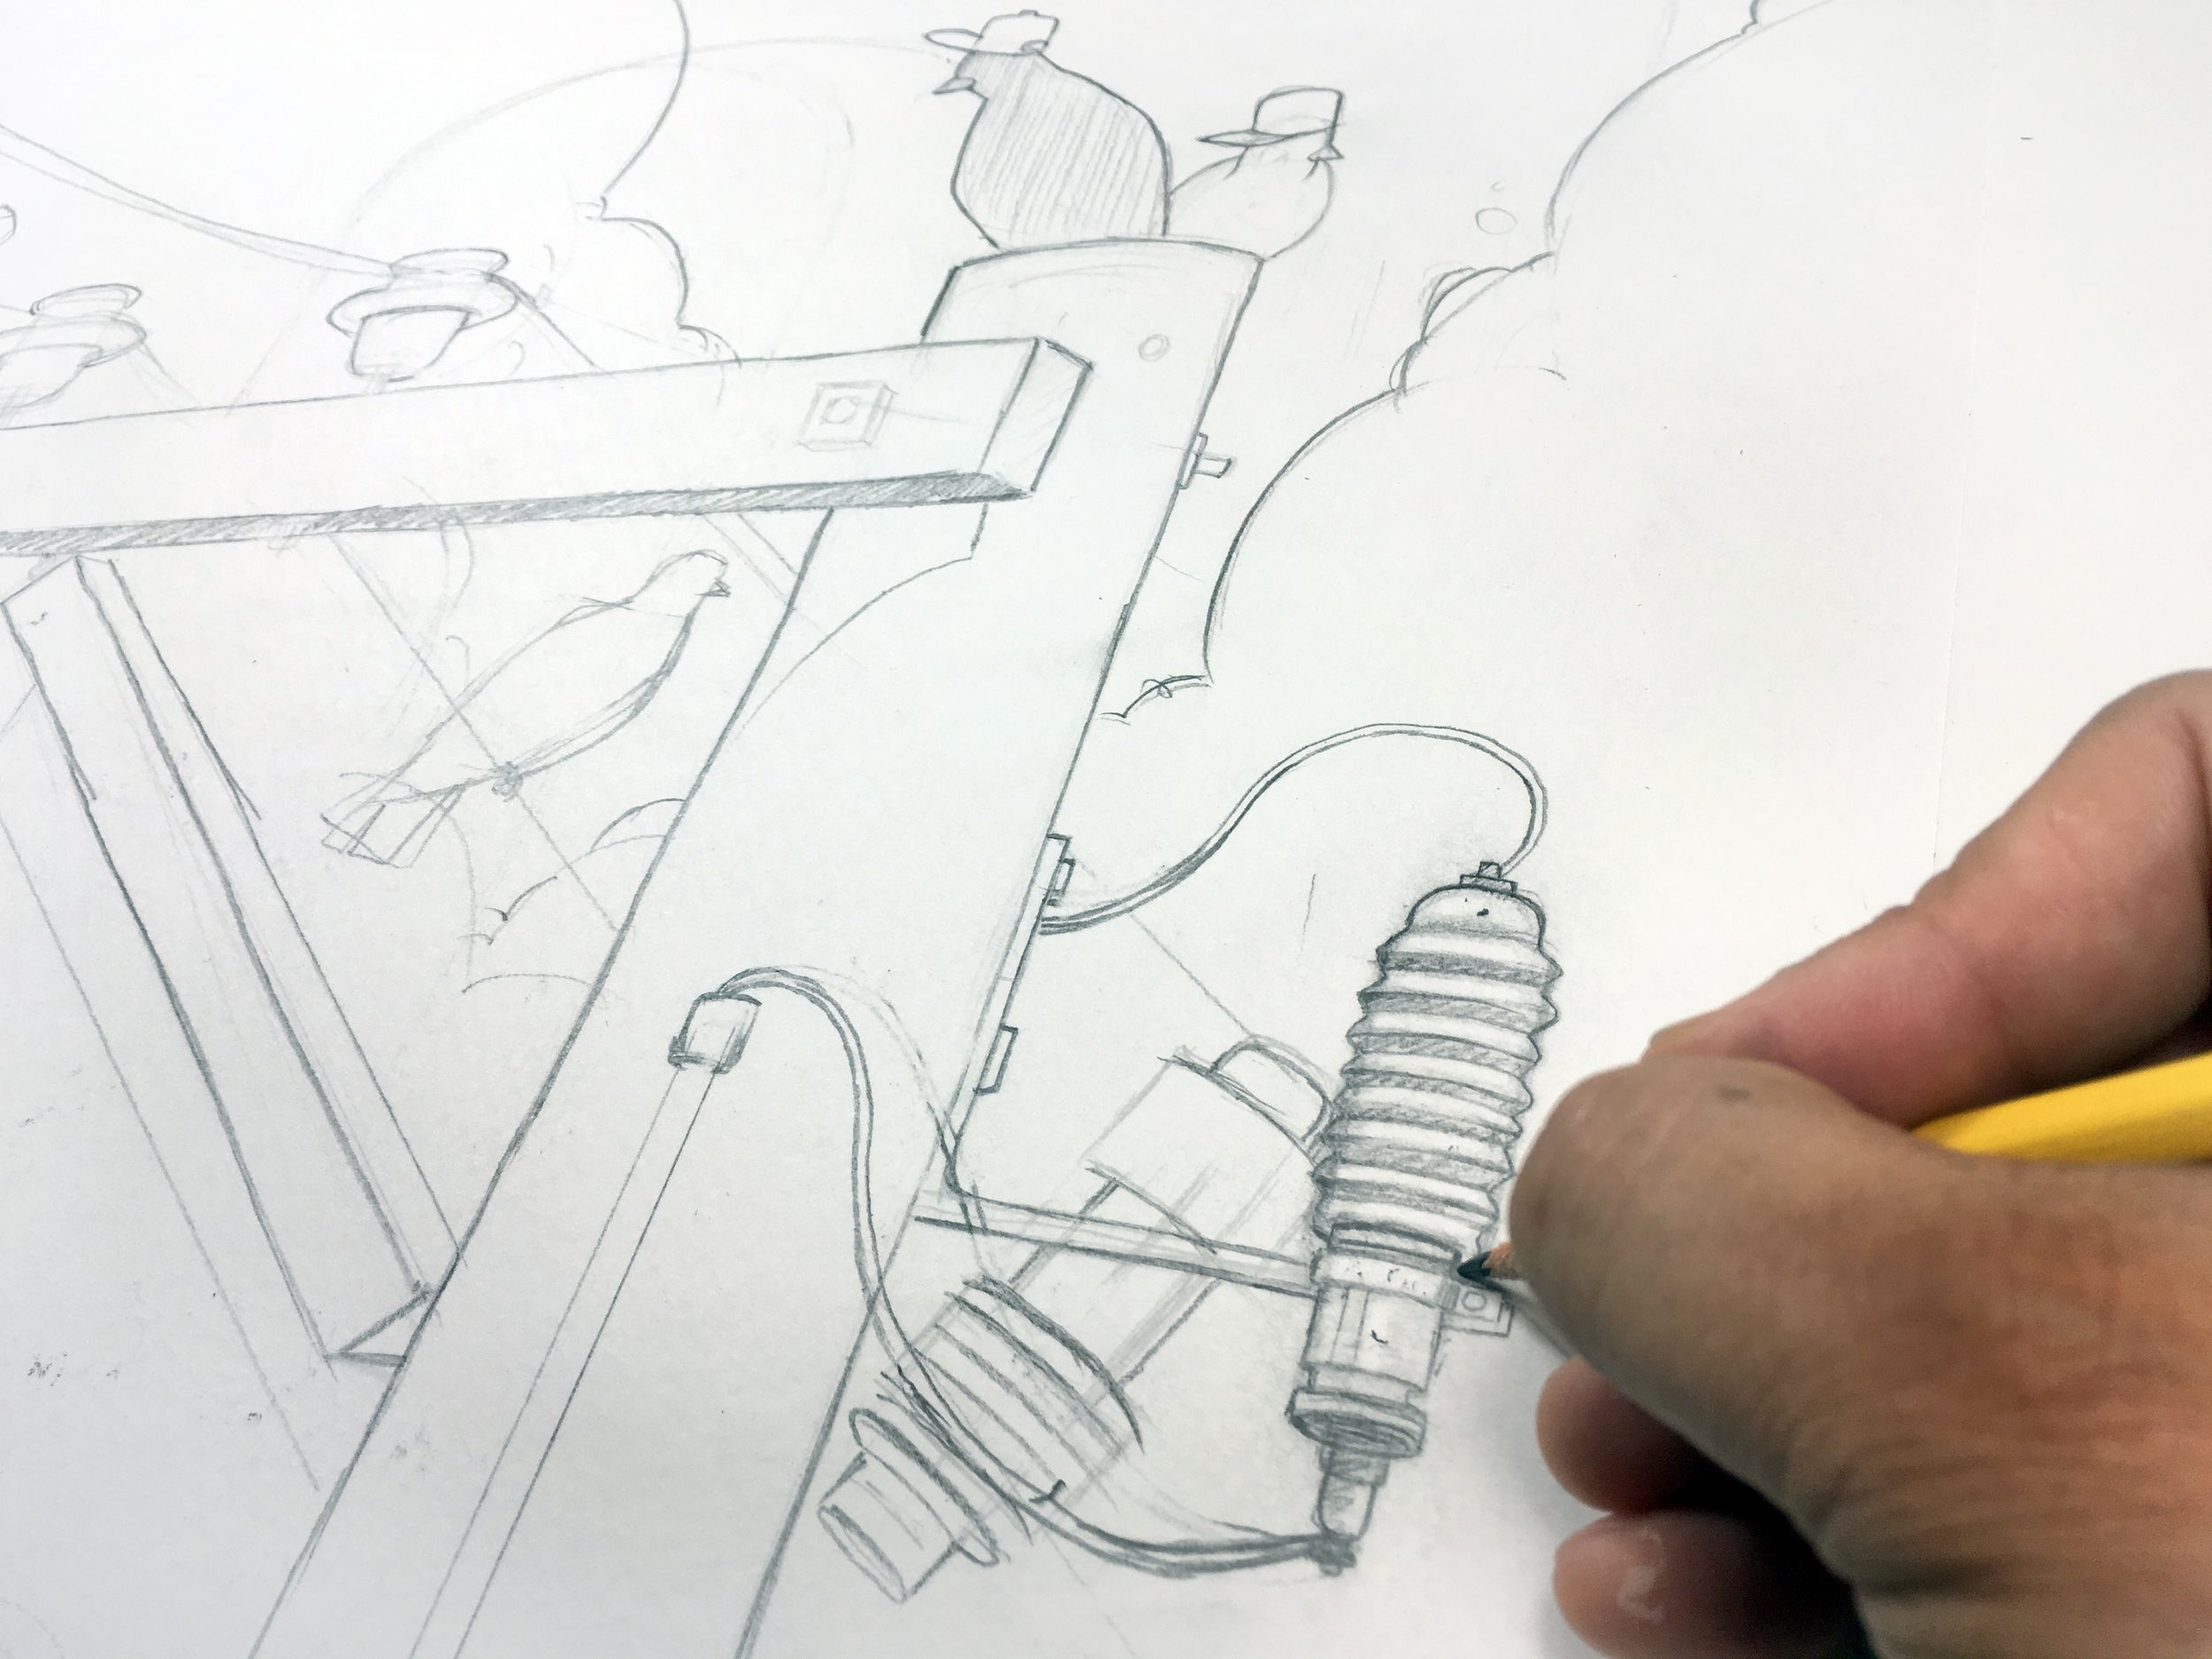 Sometimes to draw something you have to become very small so you can examine and understand the very minute details of very ordinary things. This will inevitably change the way you see the world around you and subsequently change the way you see the world inside you as well.